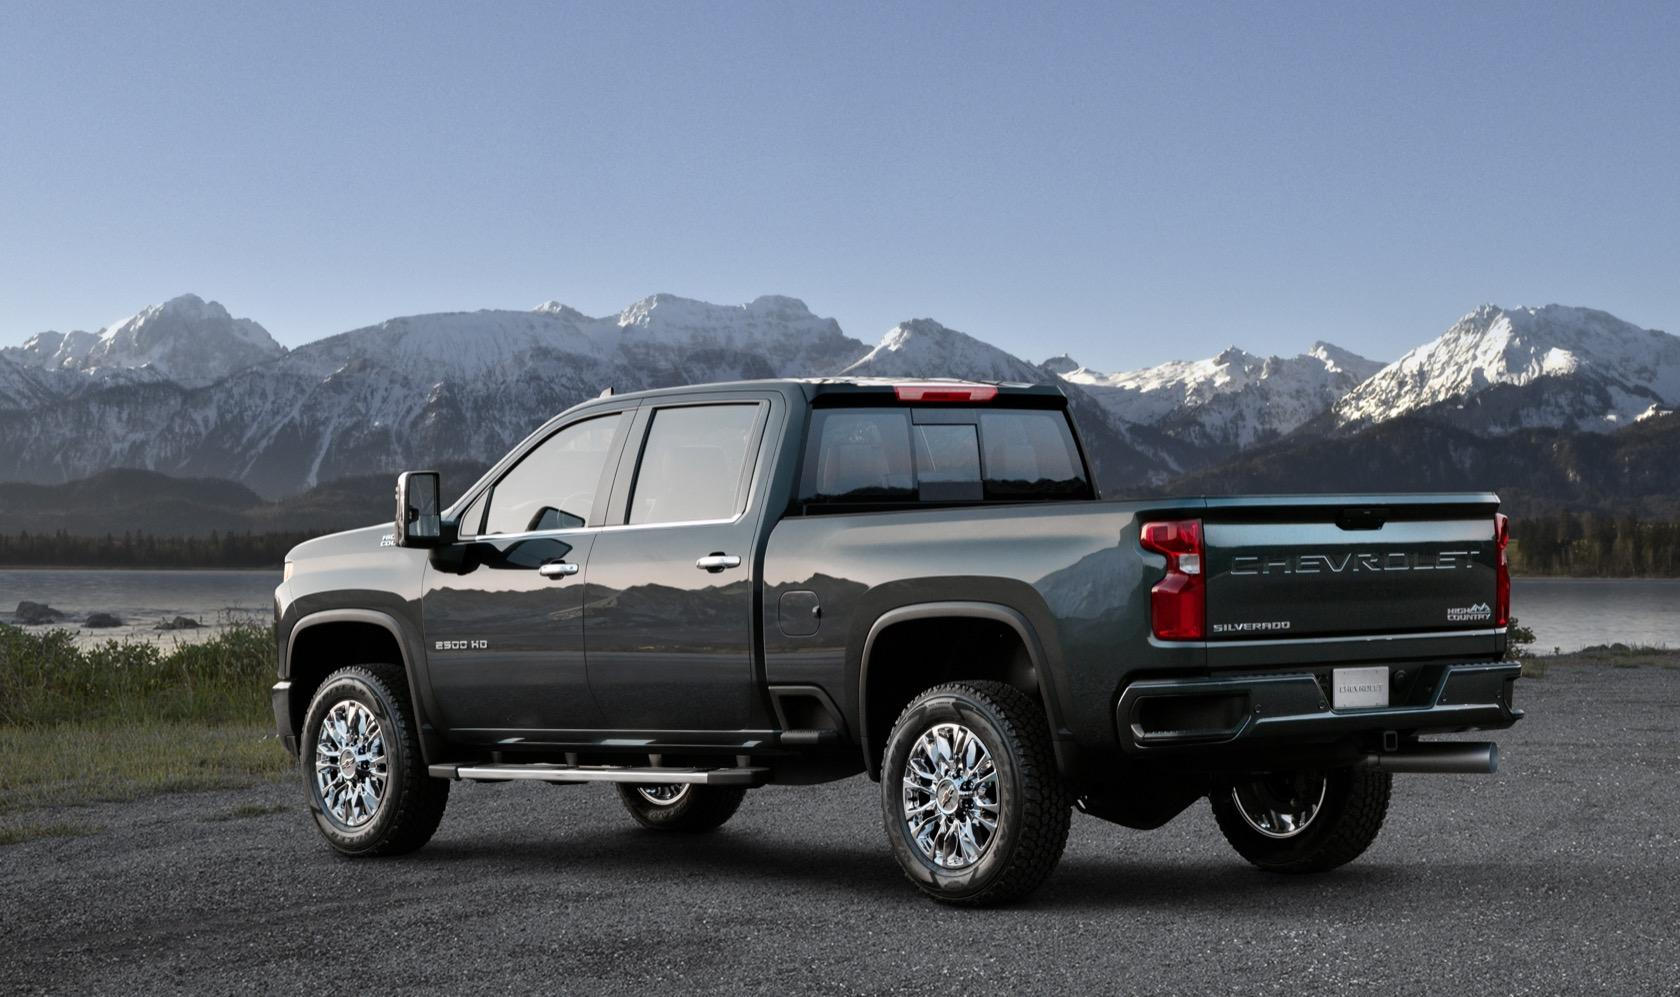 High Country Truck >> This Is The Top Of The Range 2020 Silverado Hd High Country